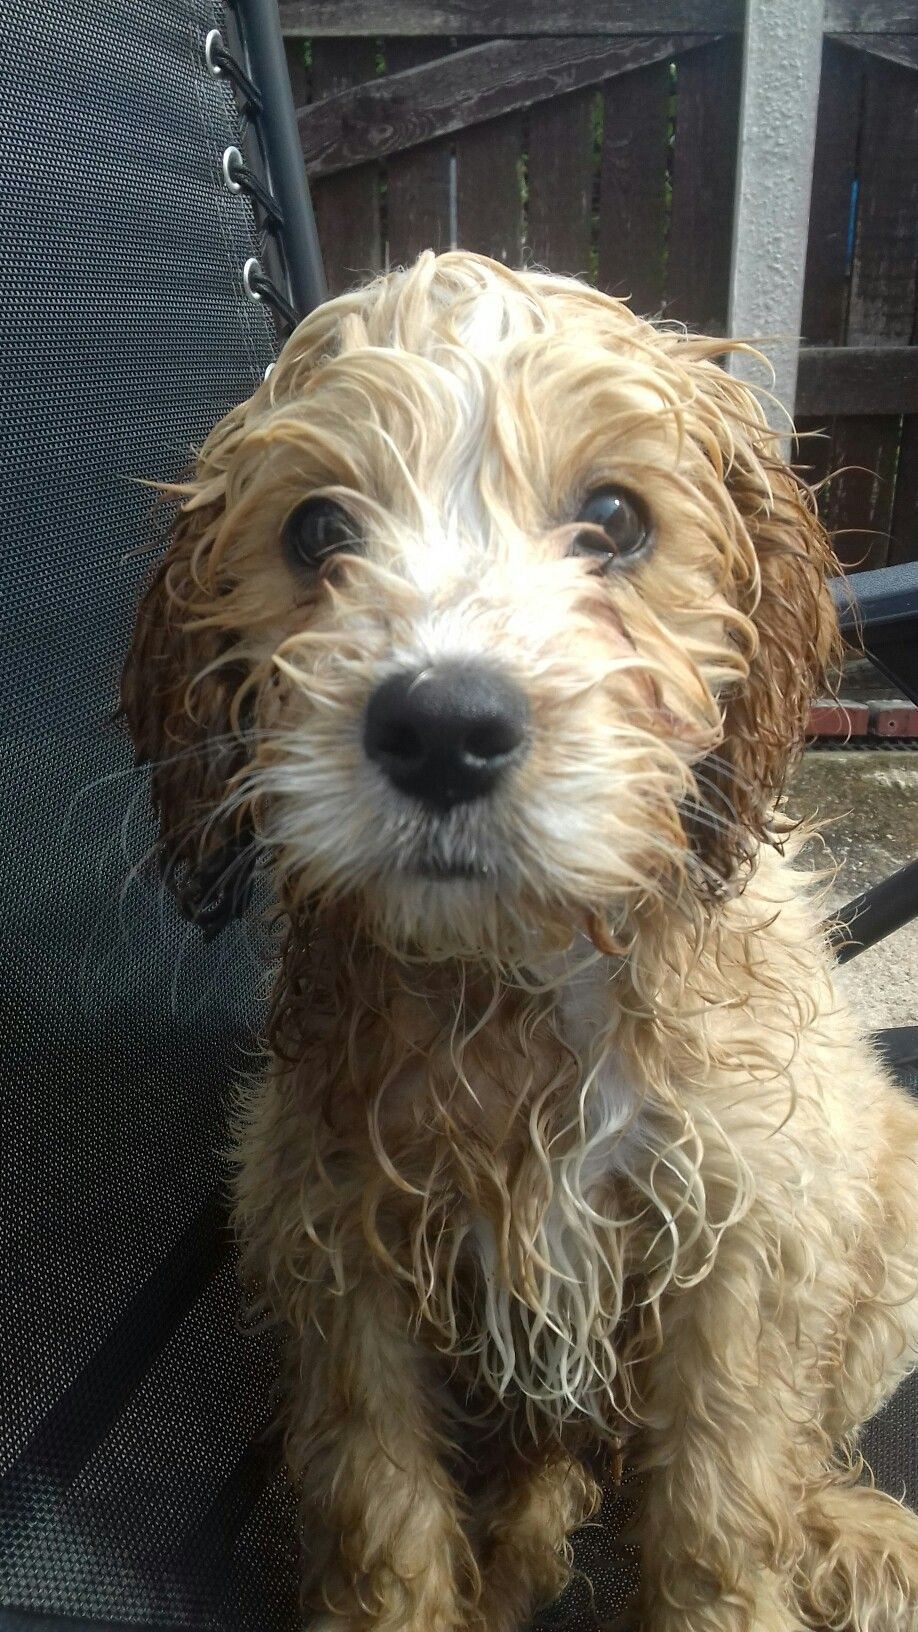 My Arthur. 12 week old Cockapoo. Wet from playing in his paddling pool. He loves water!